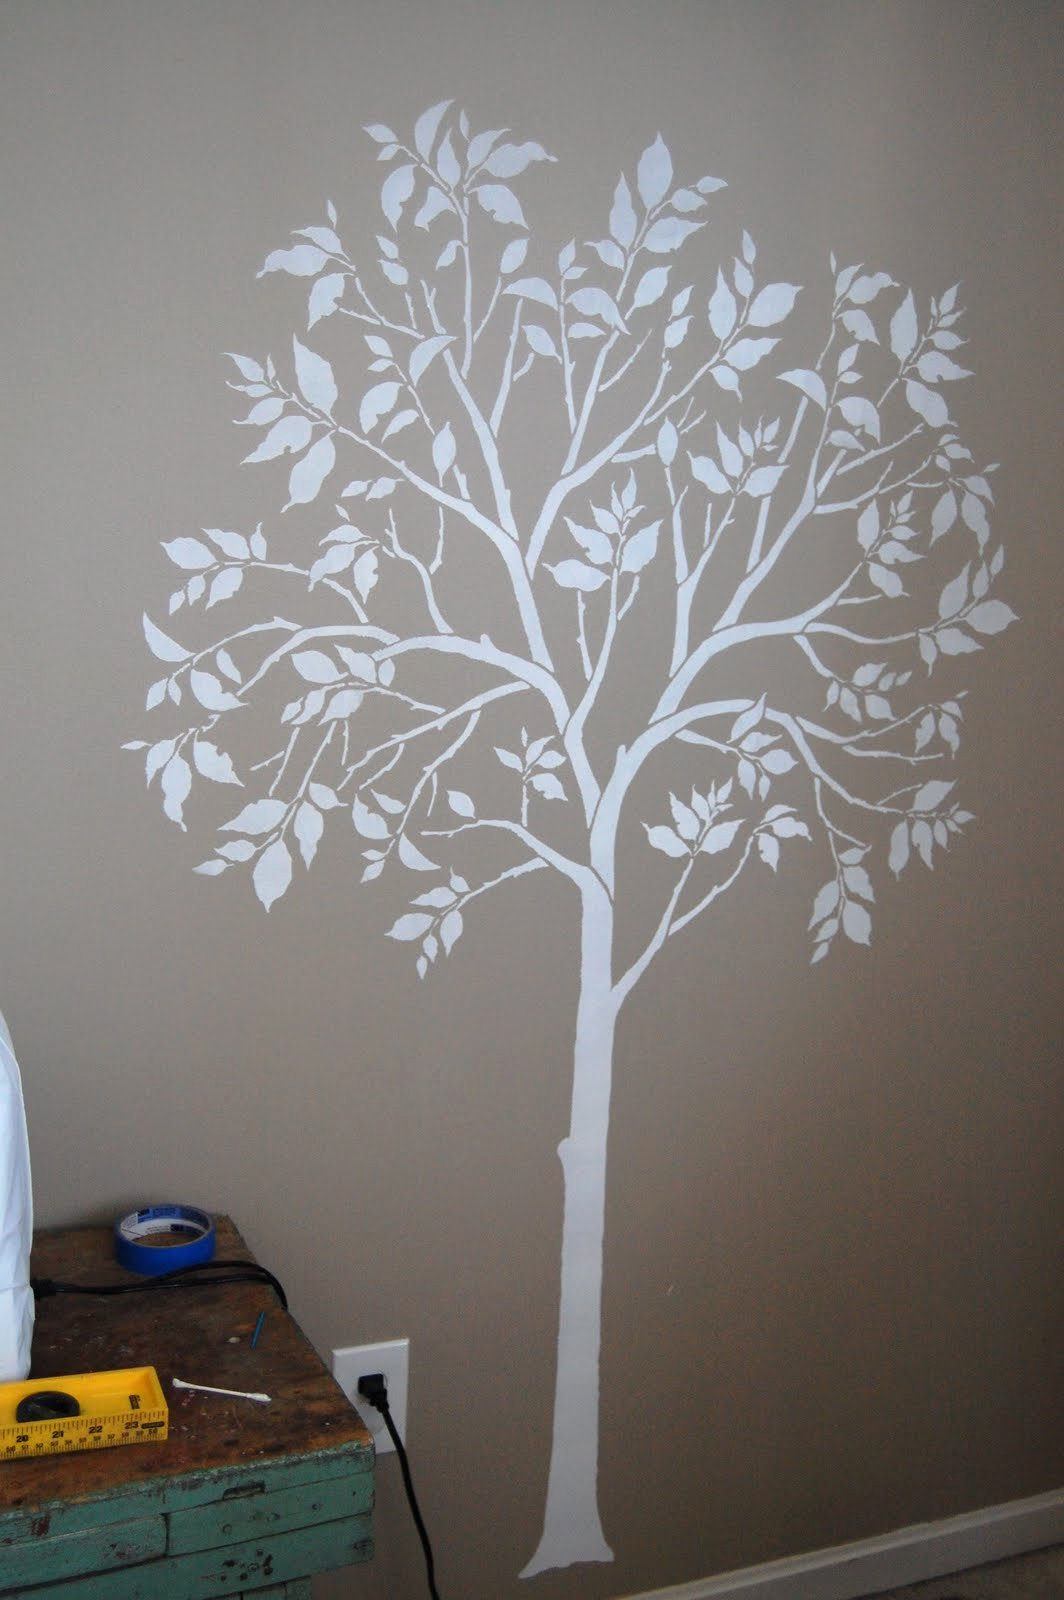 Tree Stencils for Walls Free Inspirational the Large Tree Stencil Es with A Separate Bird Stencil